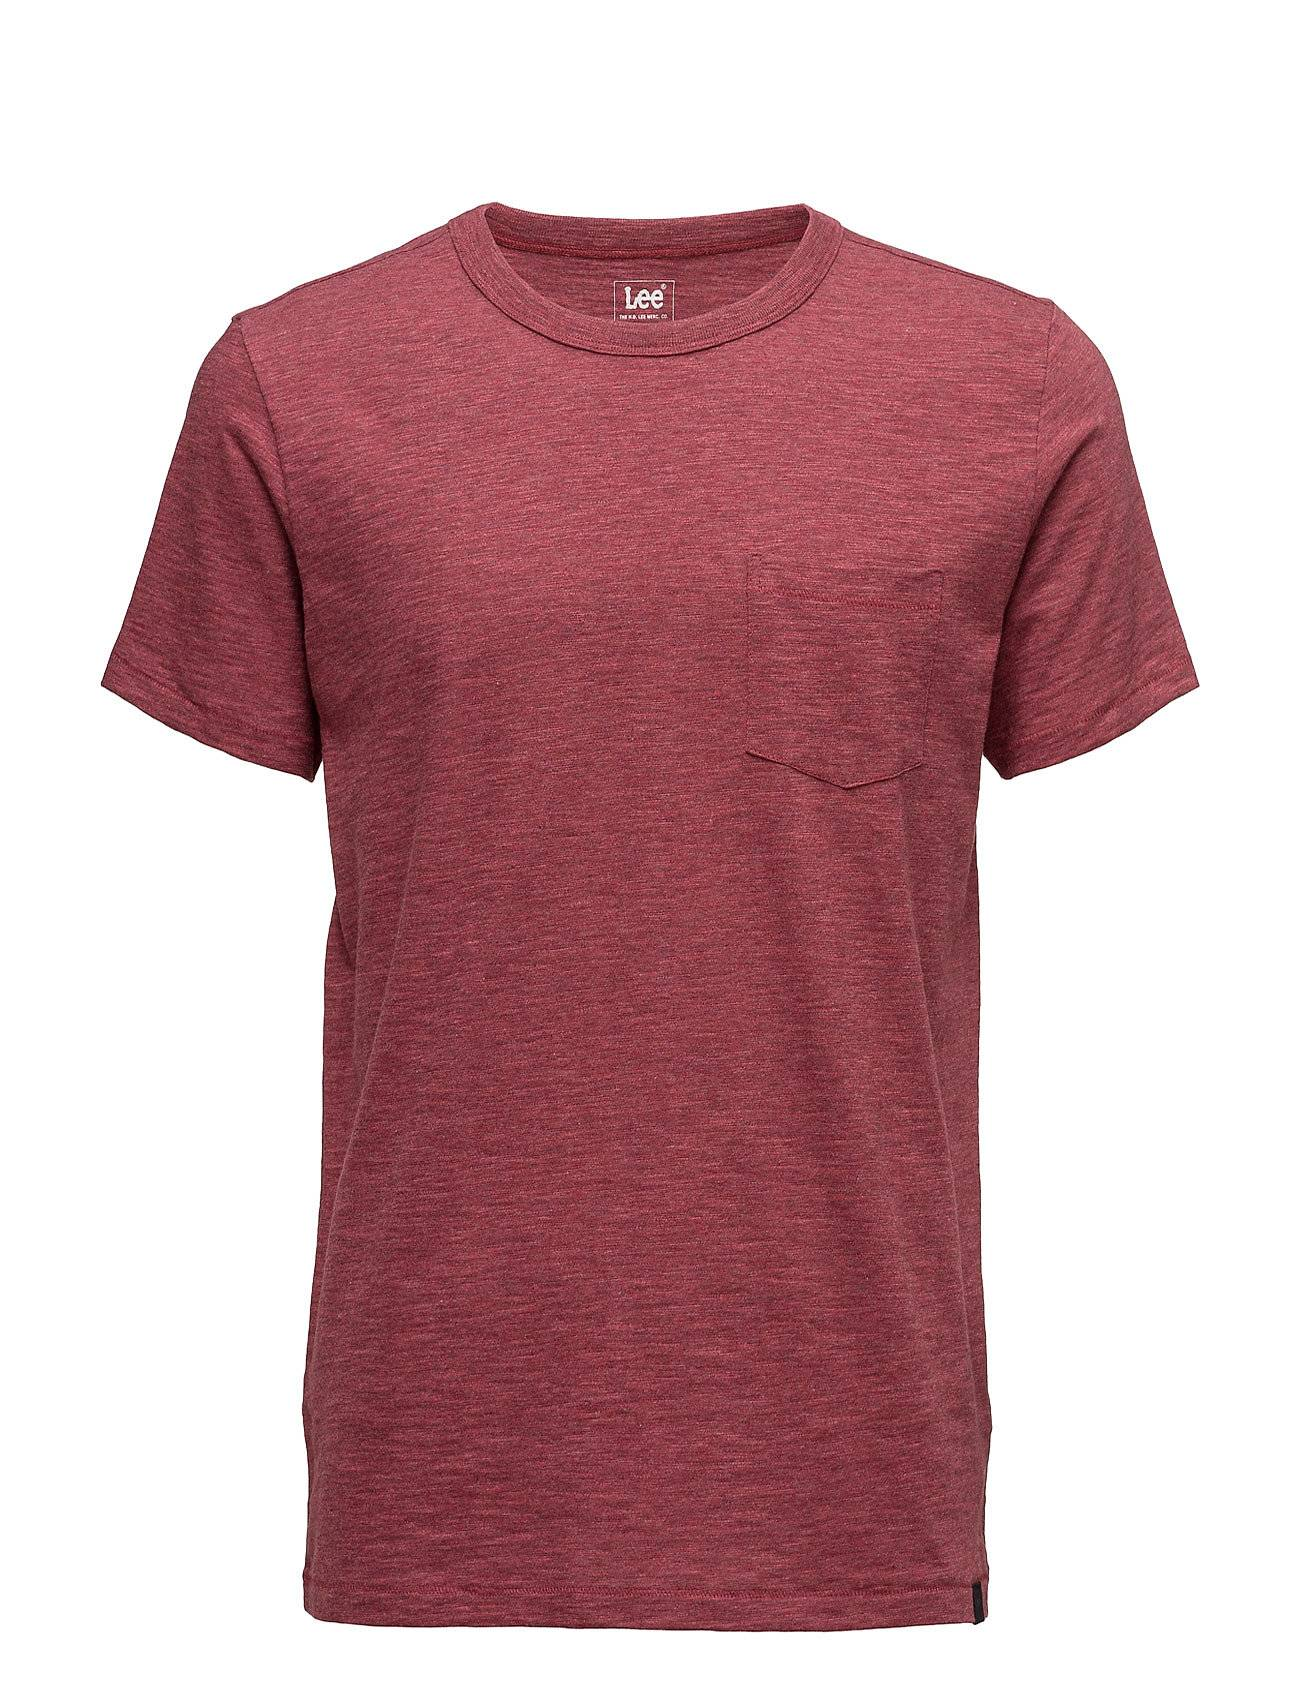 Lee Jeans Pocket Tee Tawny Port